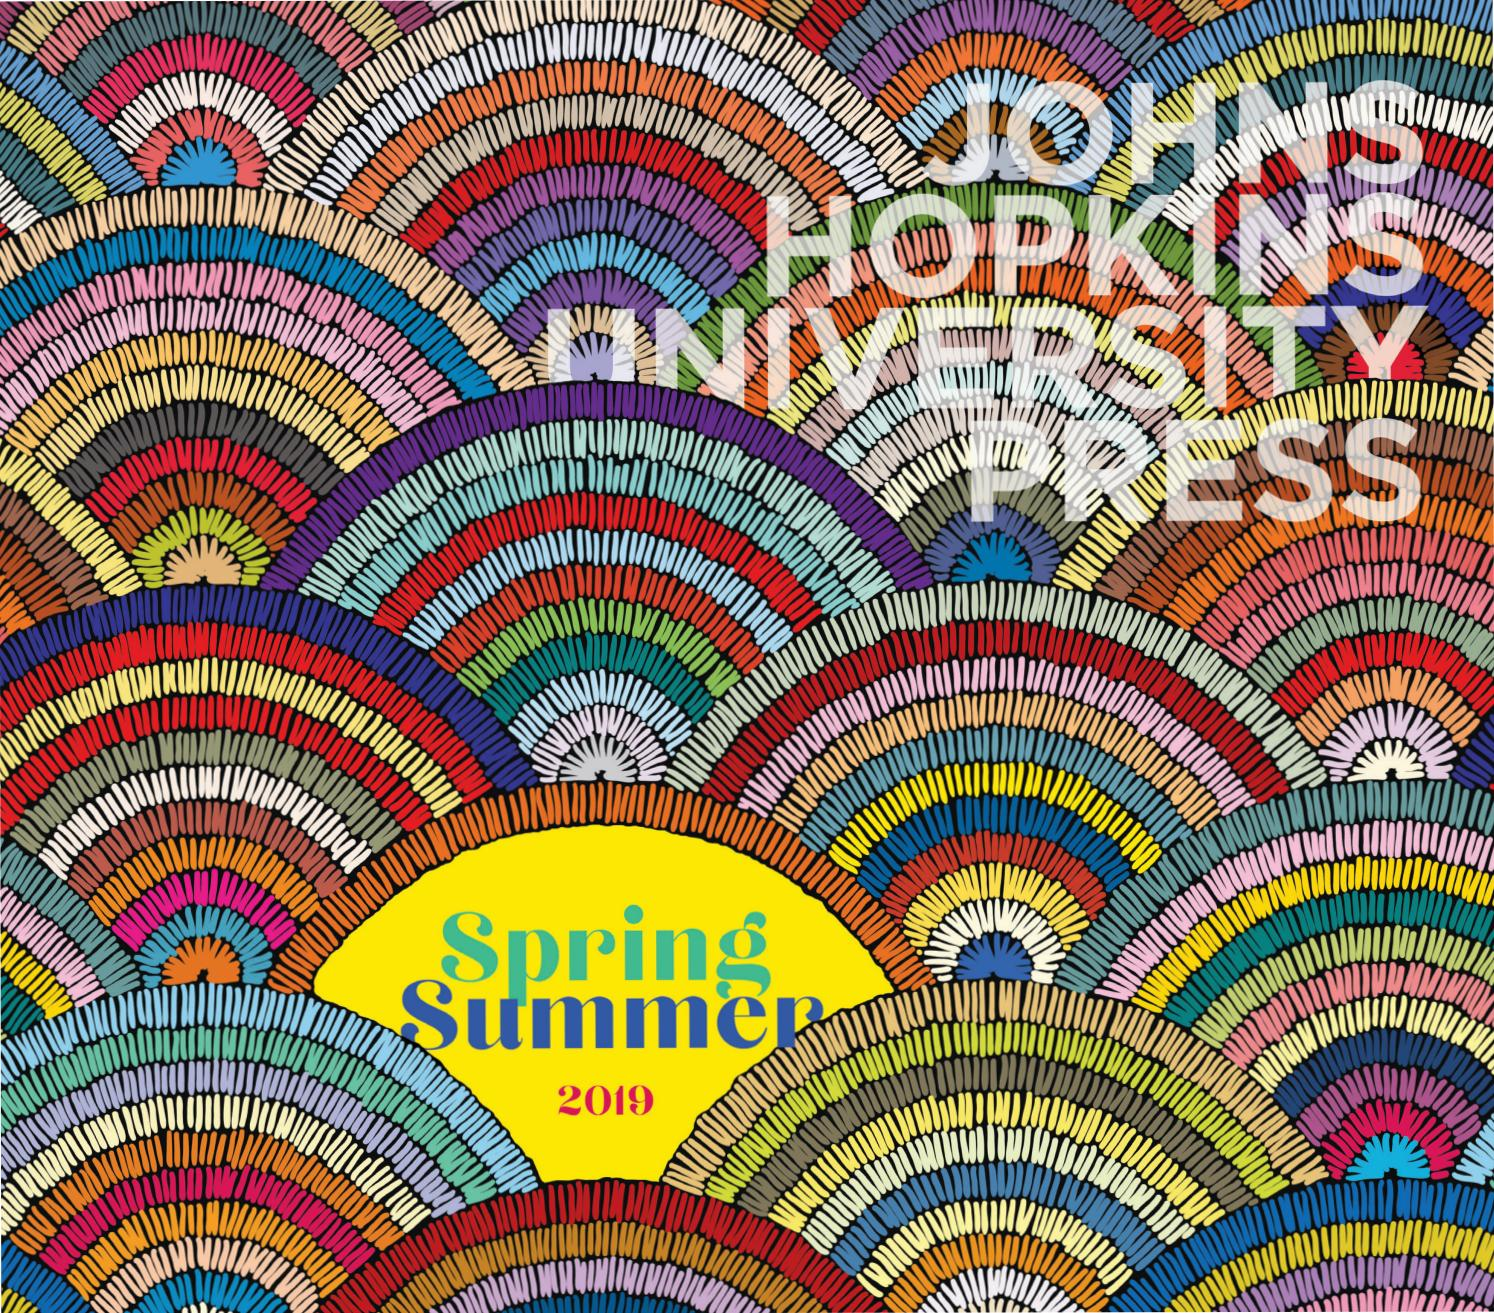 Johns Hopkins University Press Spring 2019 Catalog by Susan